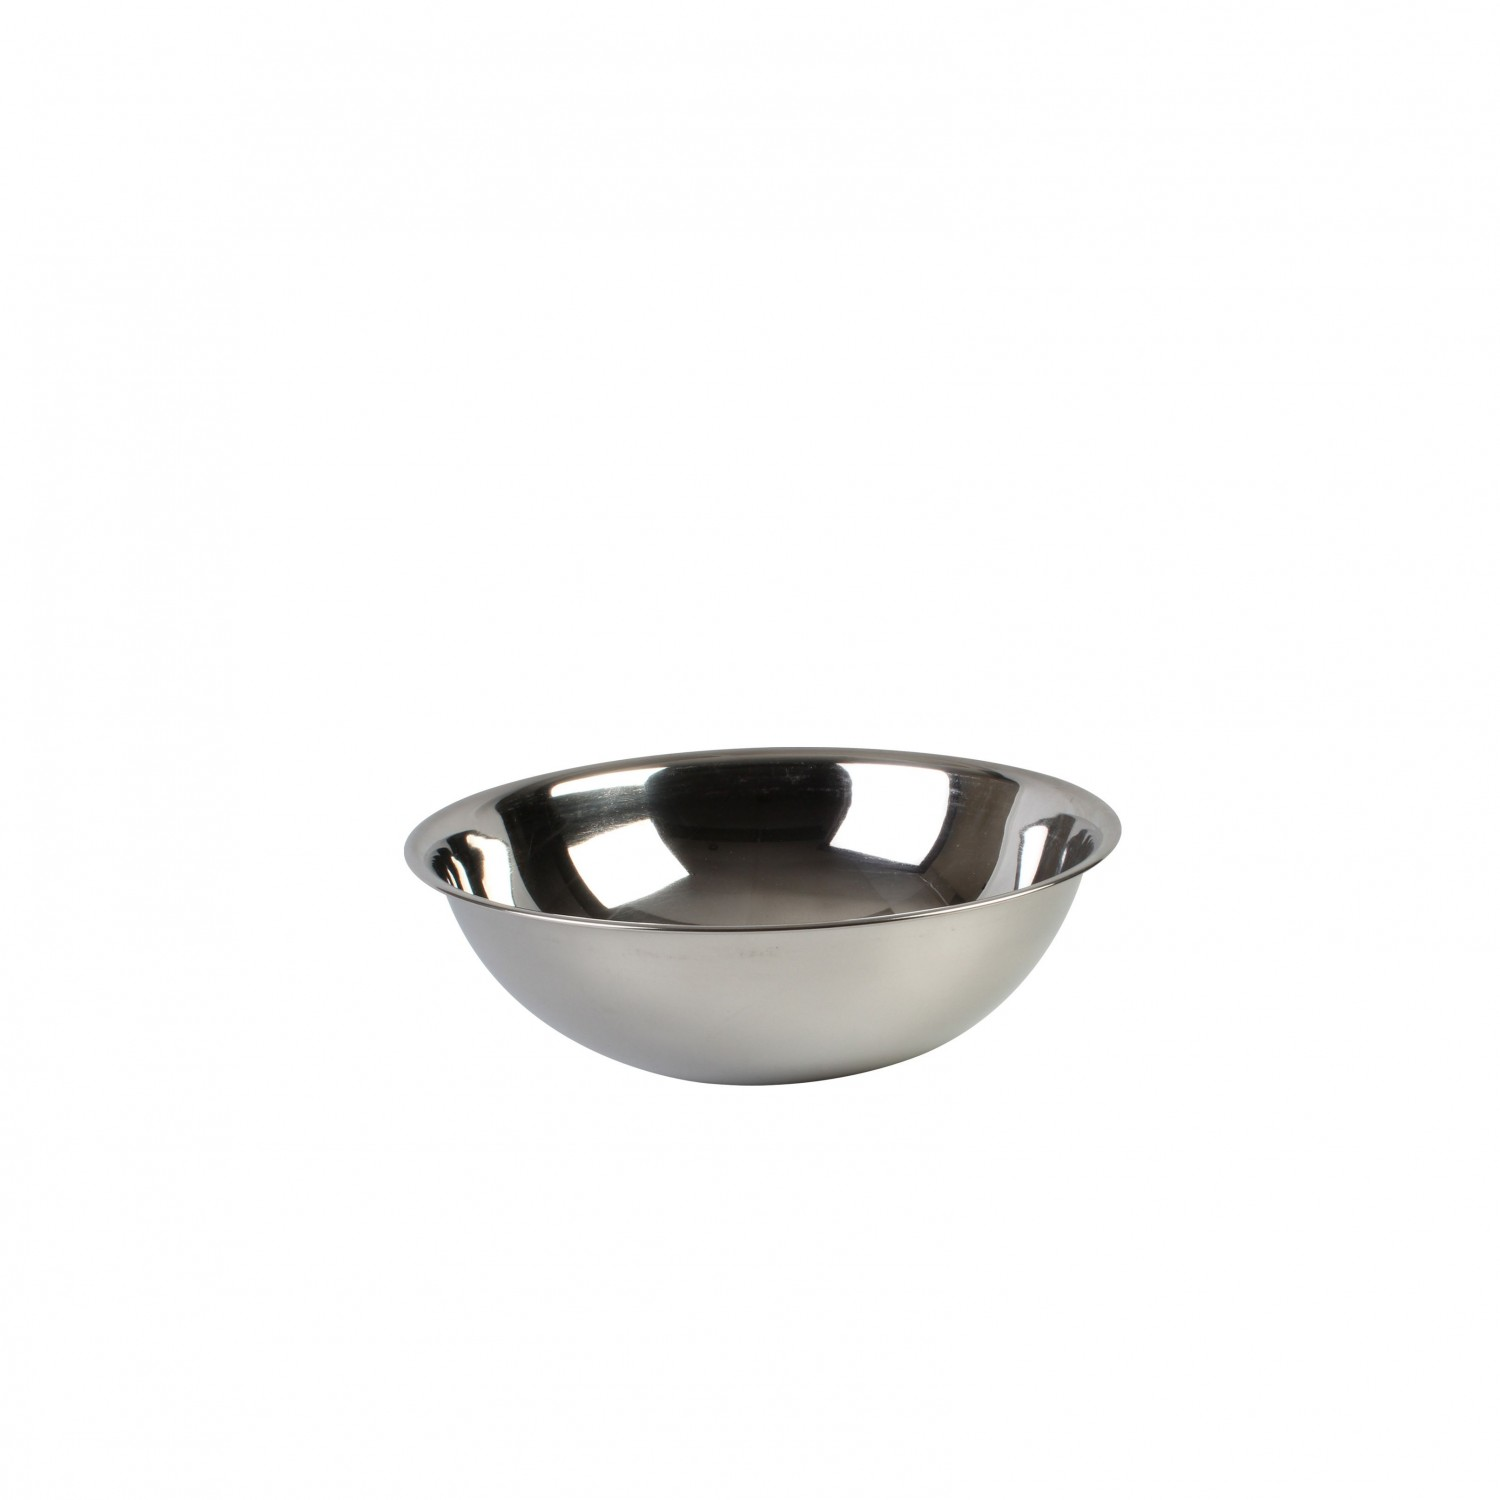 Thunder Group SLMB204 Heavy Duty Stainless Steel Mixing Bowl 4 Qt. - 2 doz